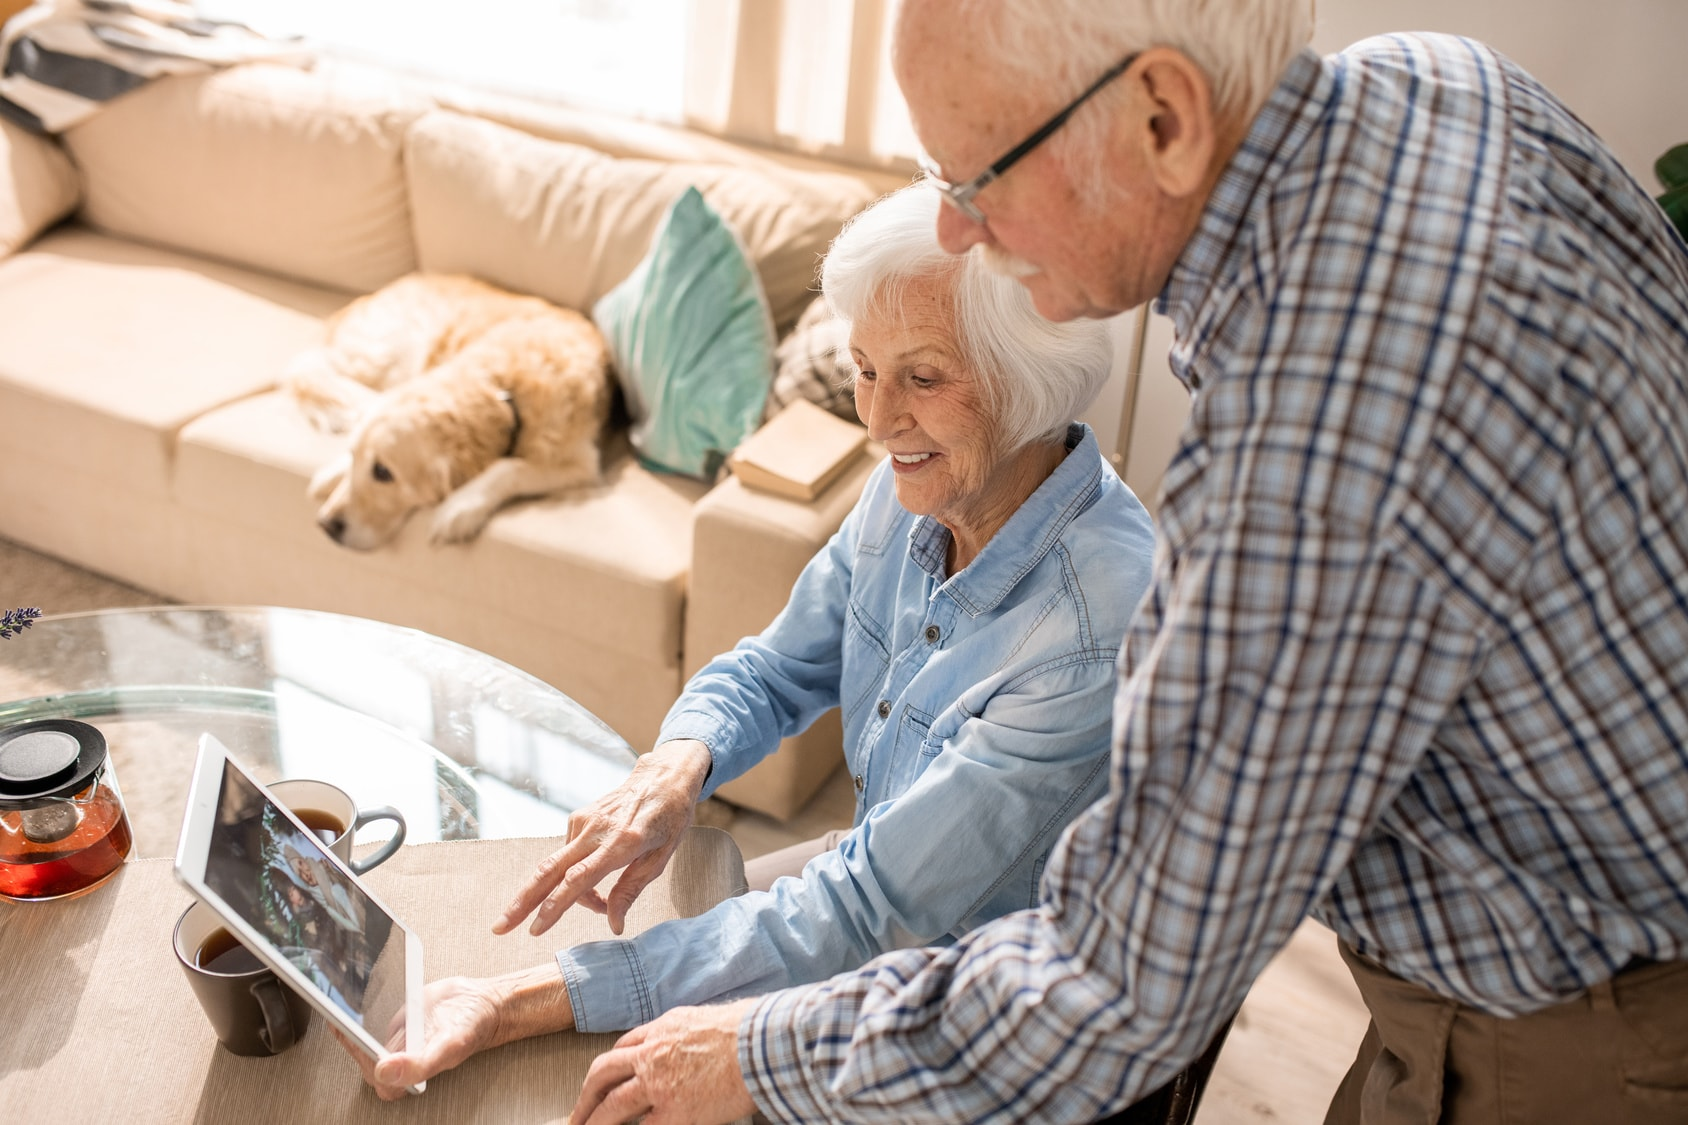 7 questions to determine if you're retirement residence ready